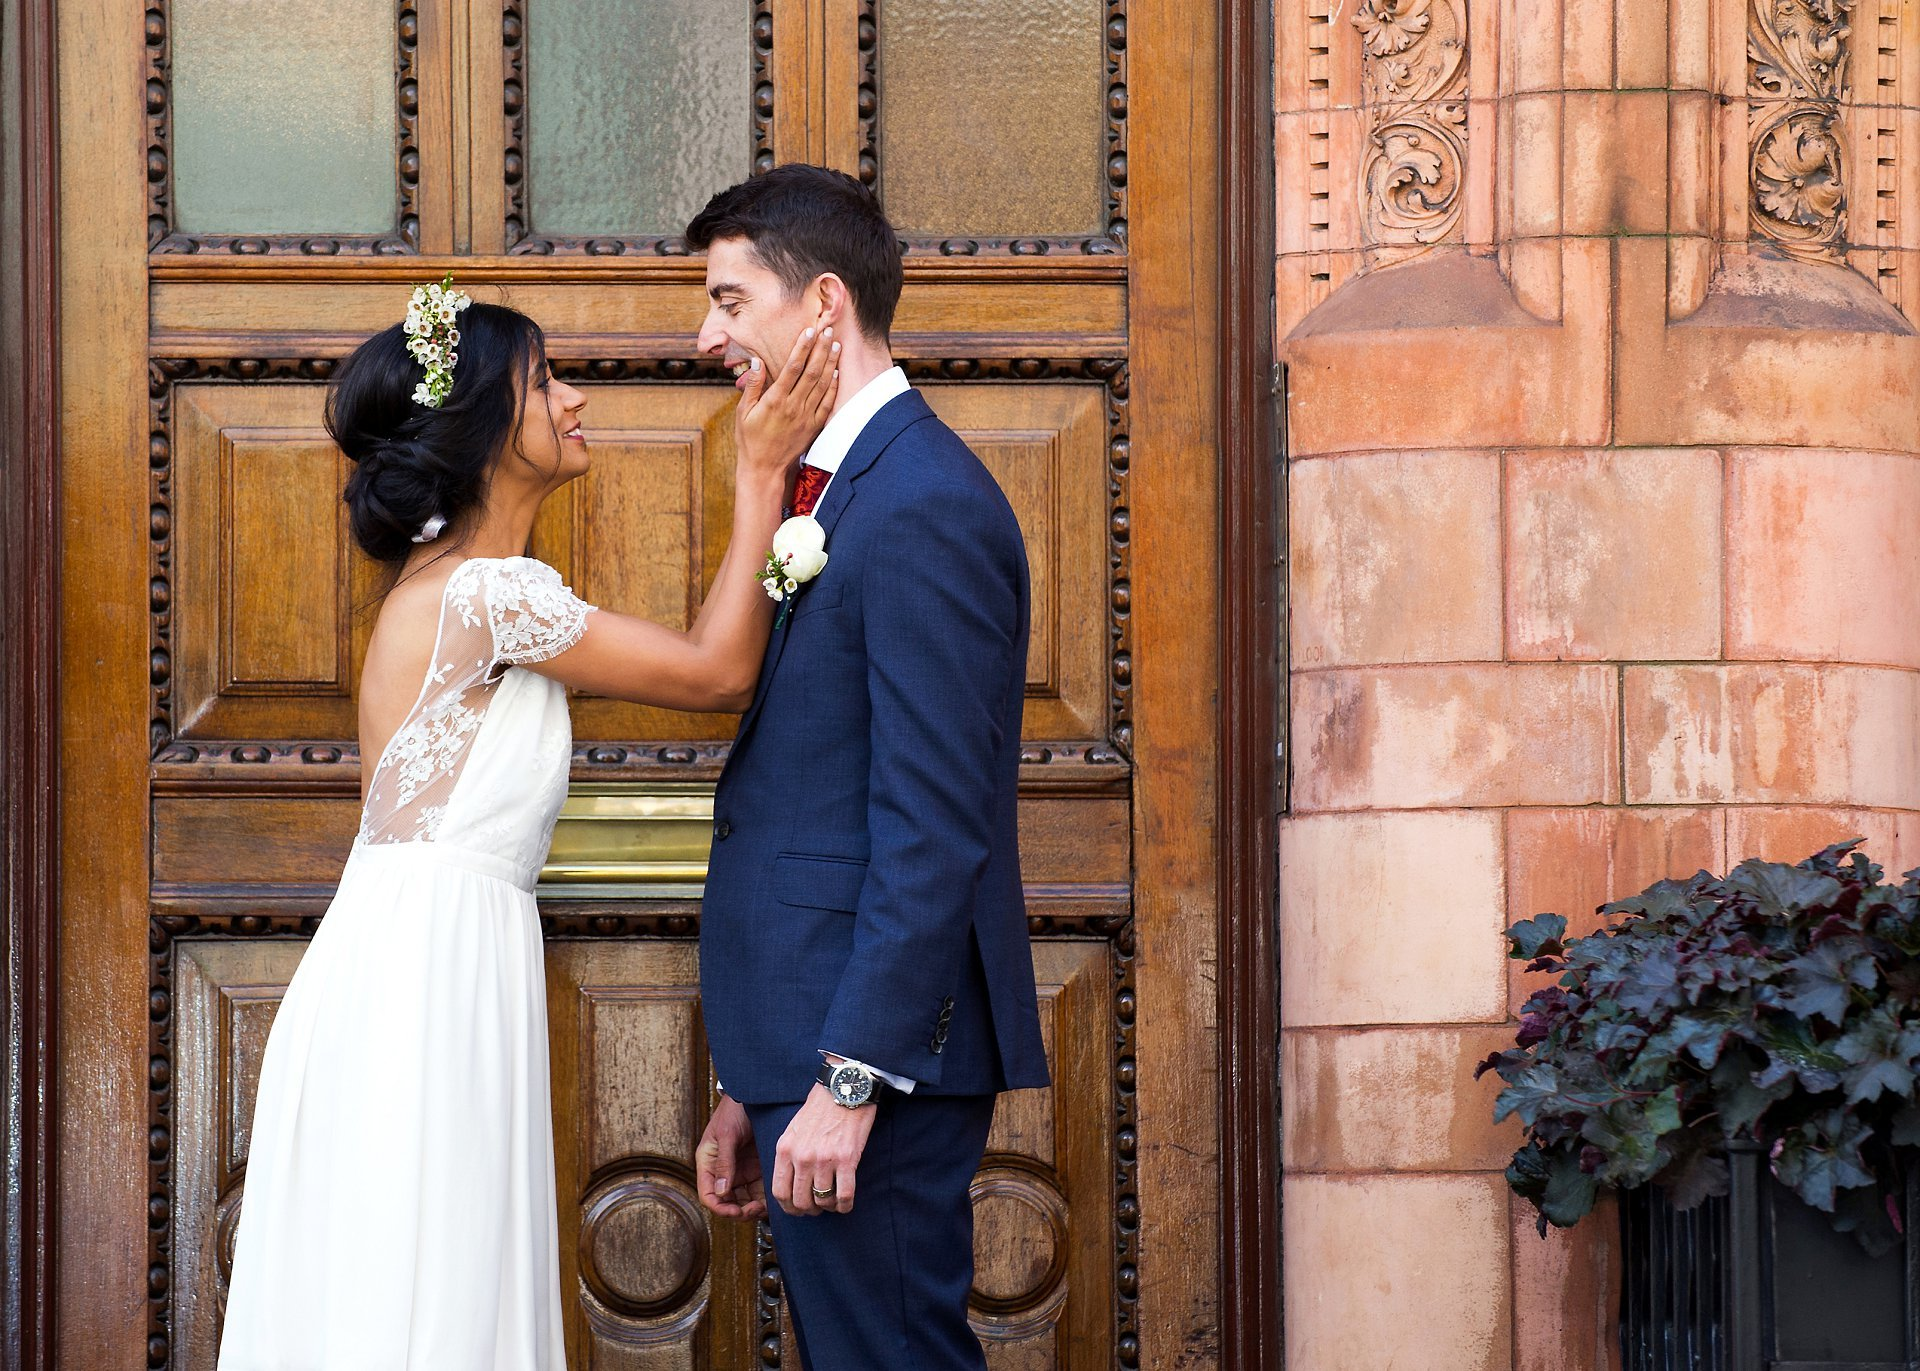 mount street wedding photography by emma duggan here showing a bride cupping her husband's face